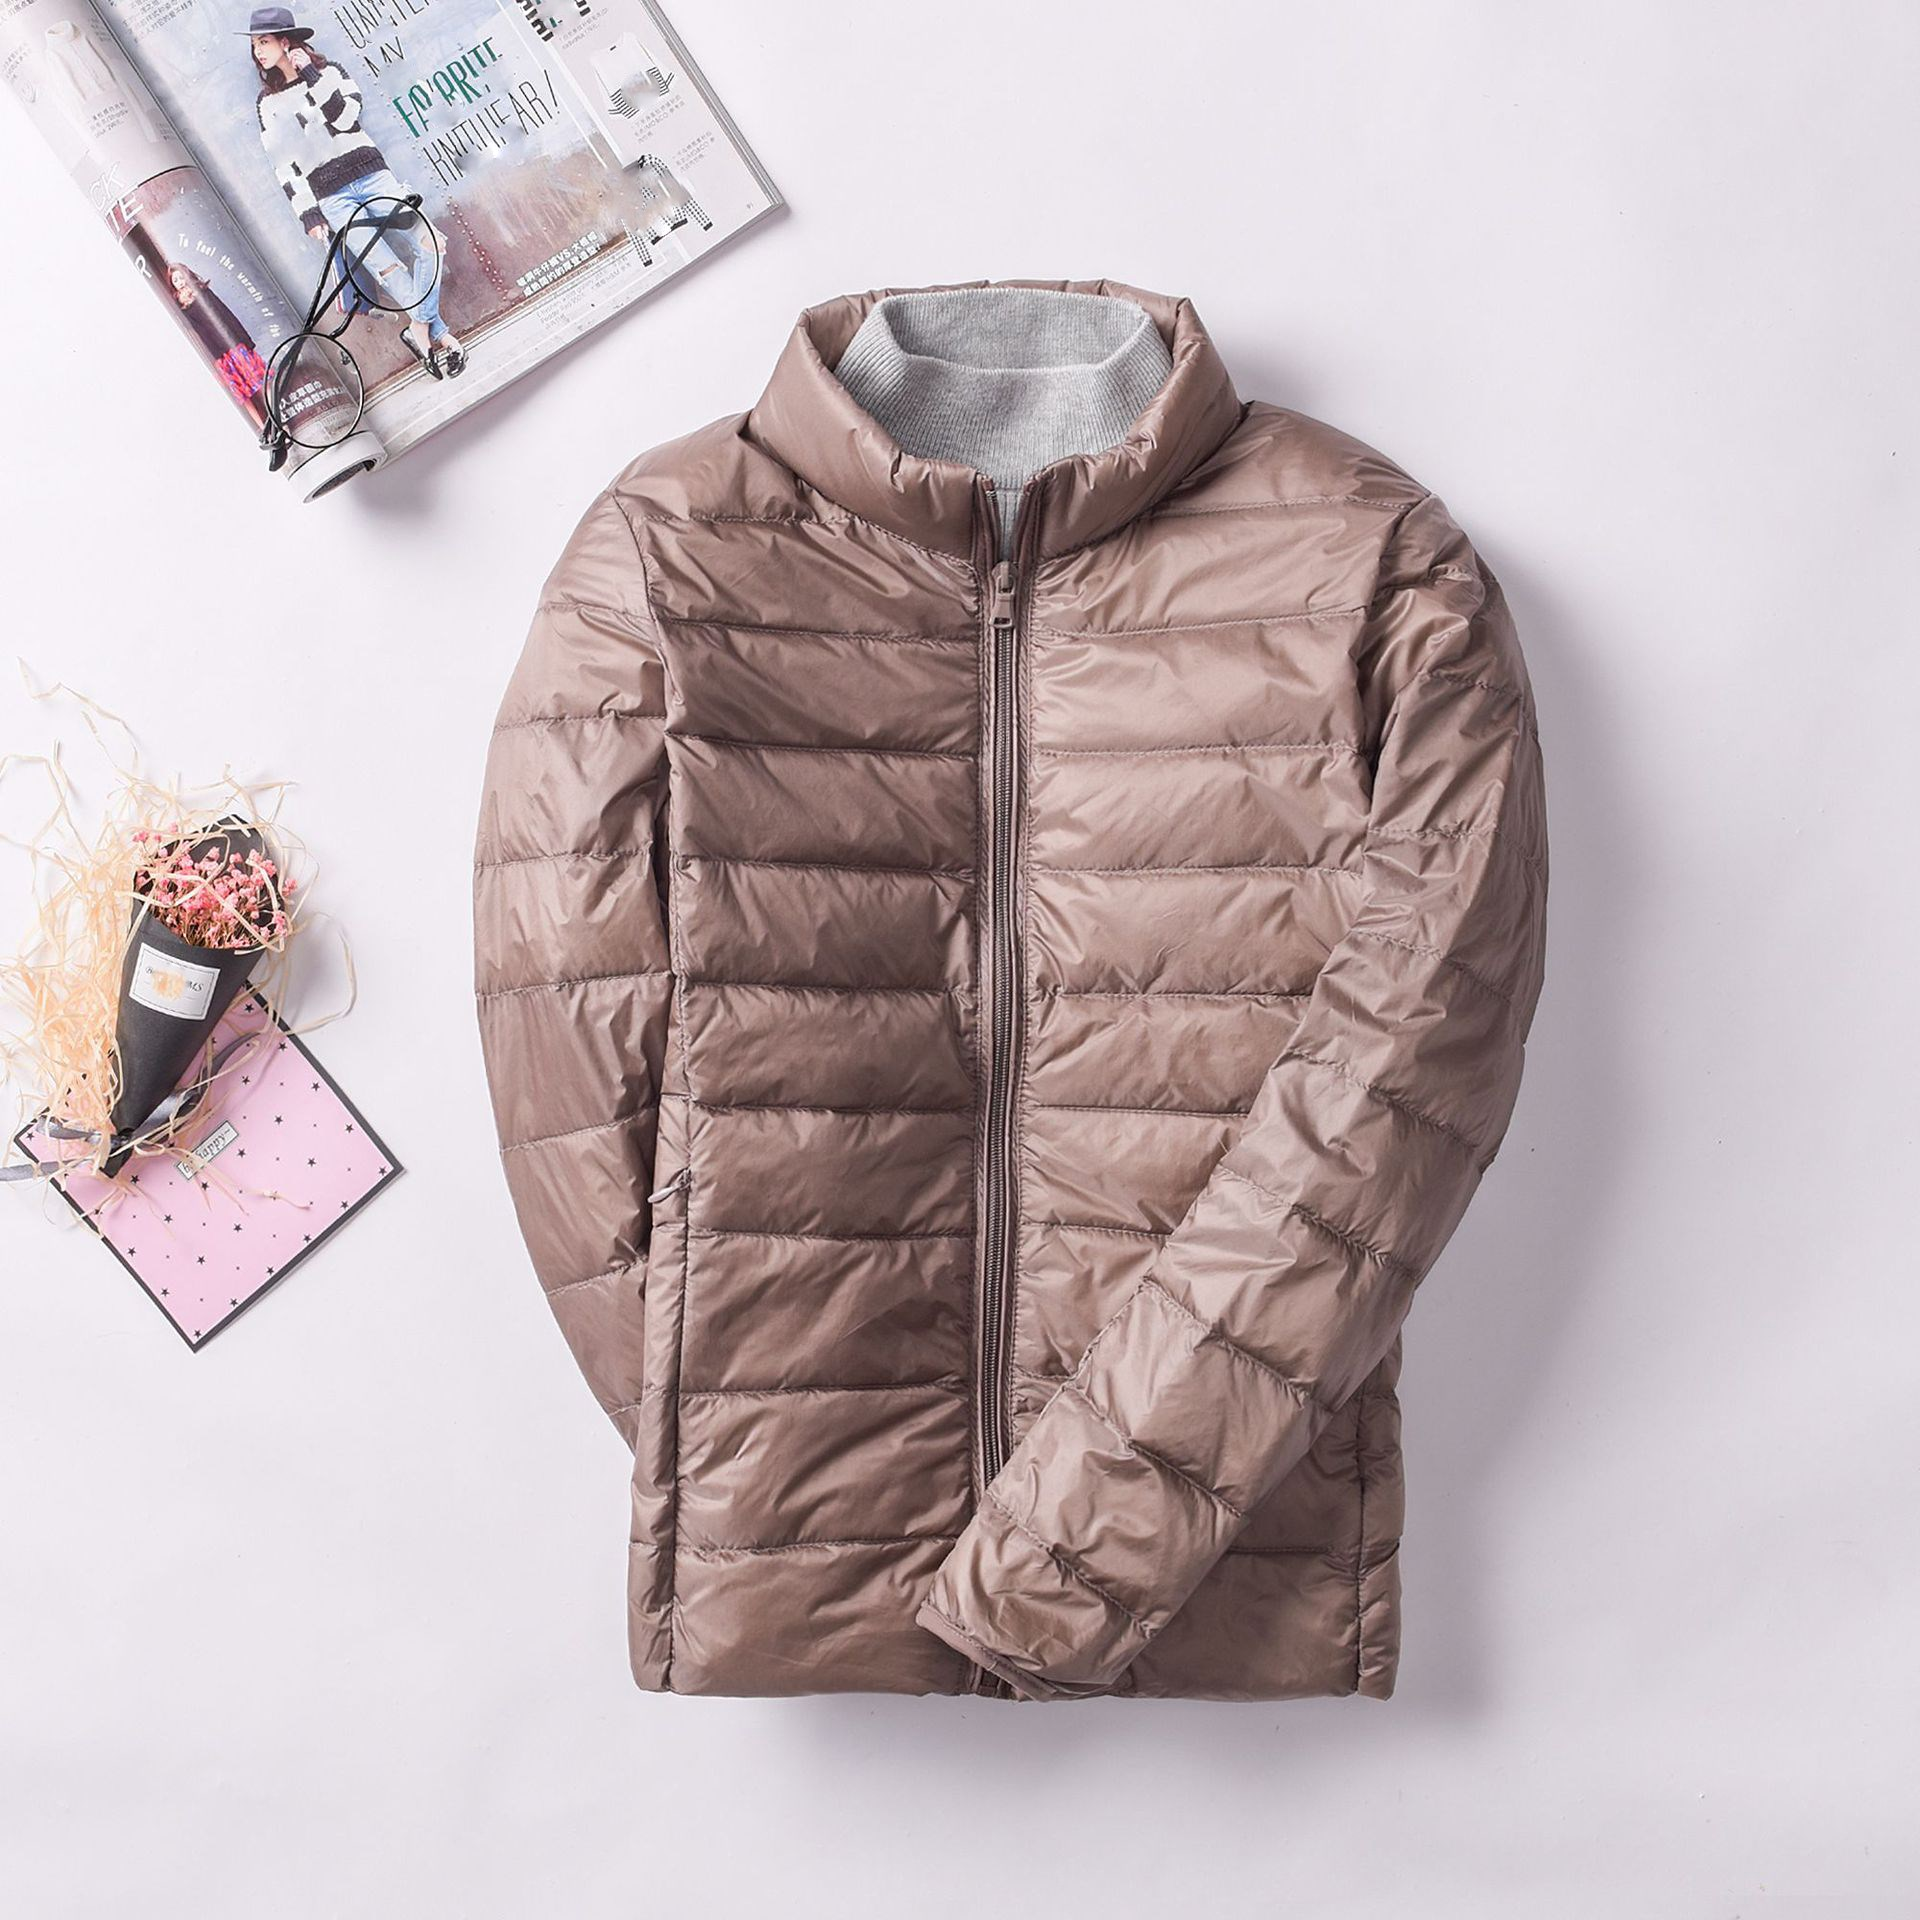 Plus Size Winter Women Casual Long Sleeve   Parkas   Light White Duck Down Warm Jacket Zippers Female Slim Outwear